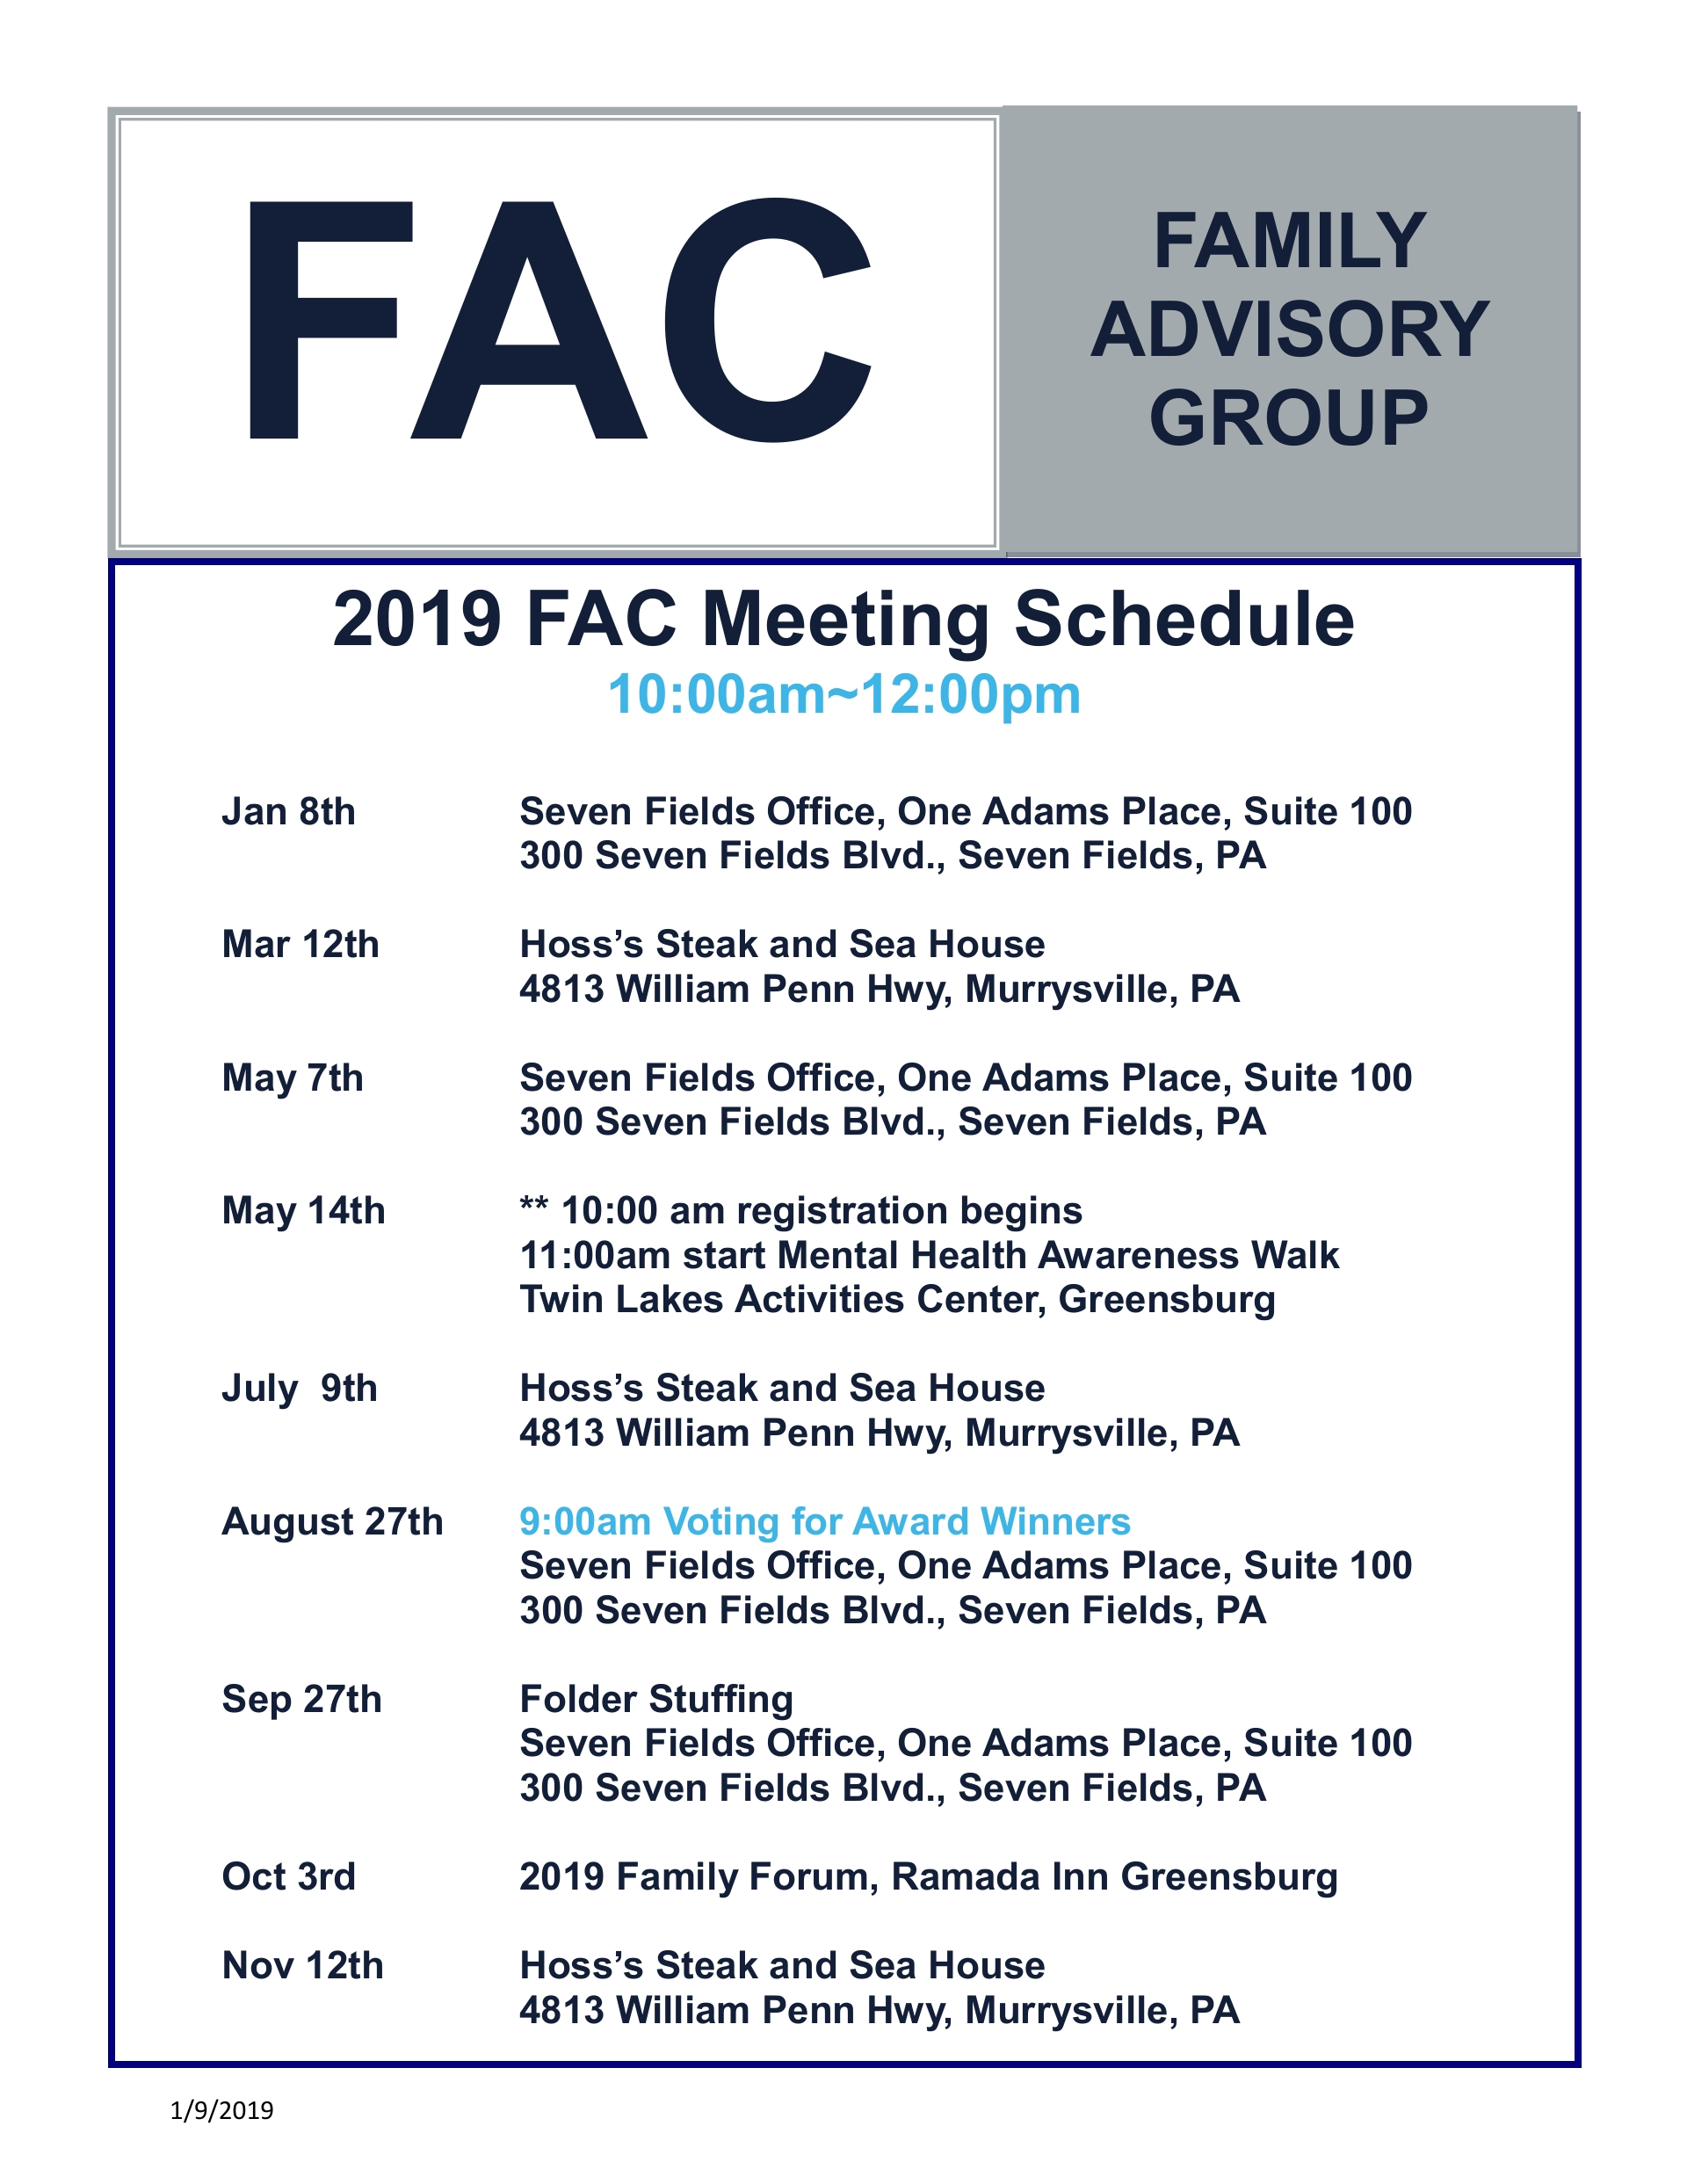 BEACON FAMILY FORUM  Save the Date October 3, 2019